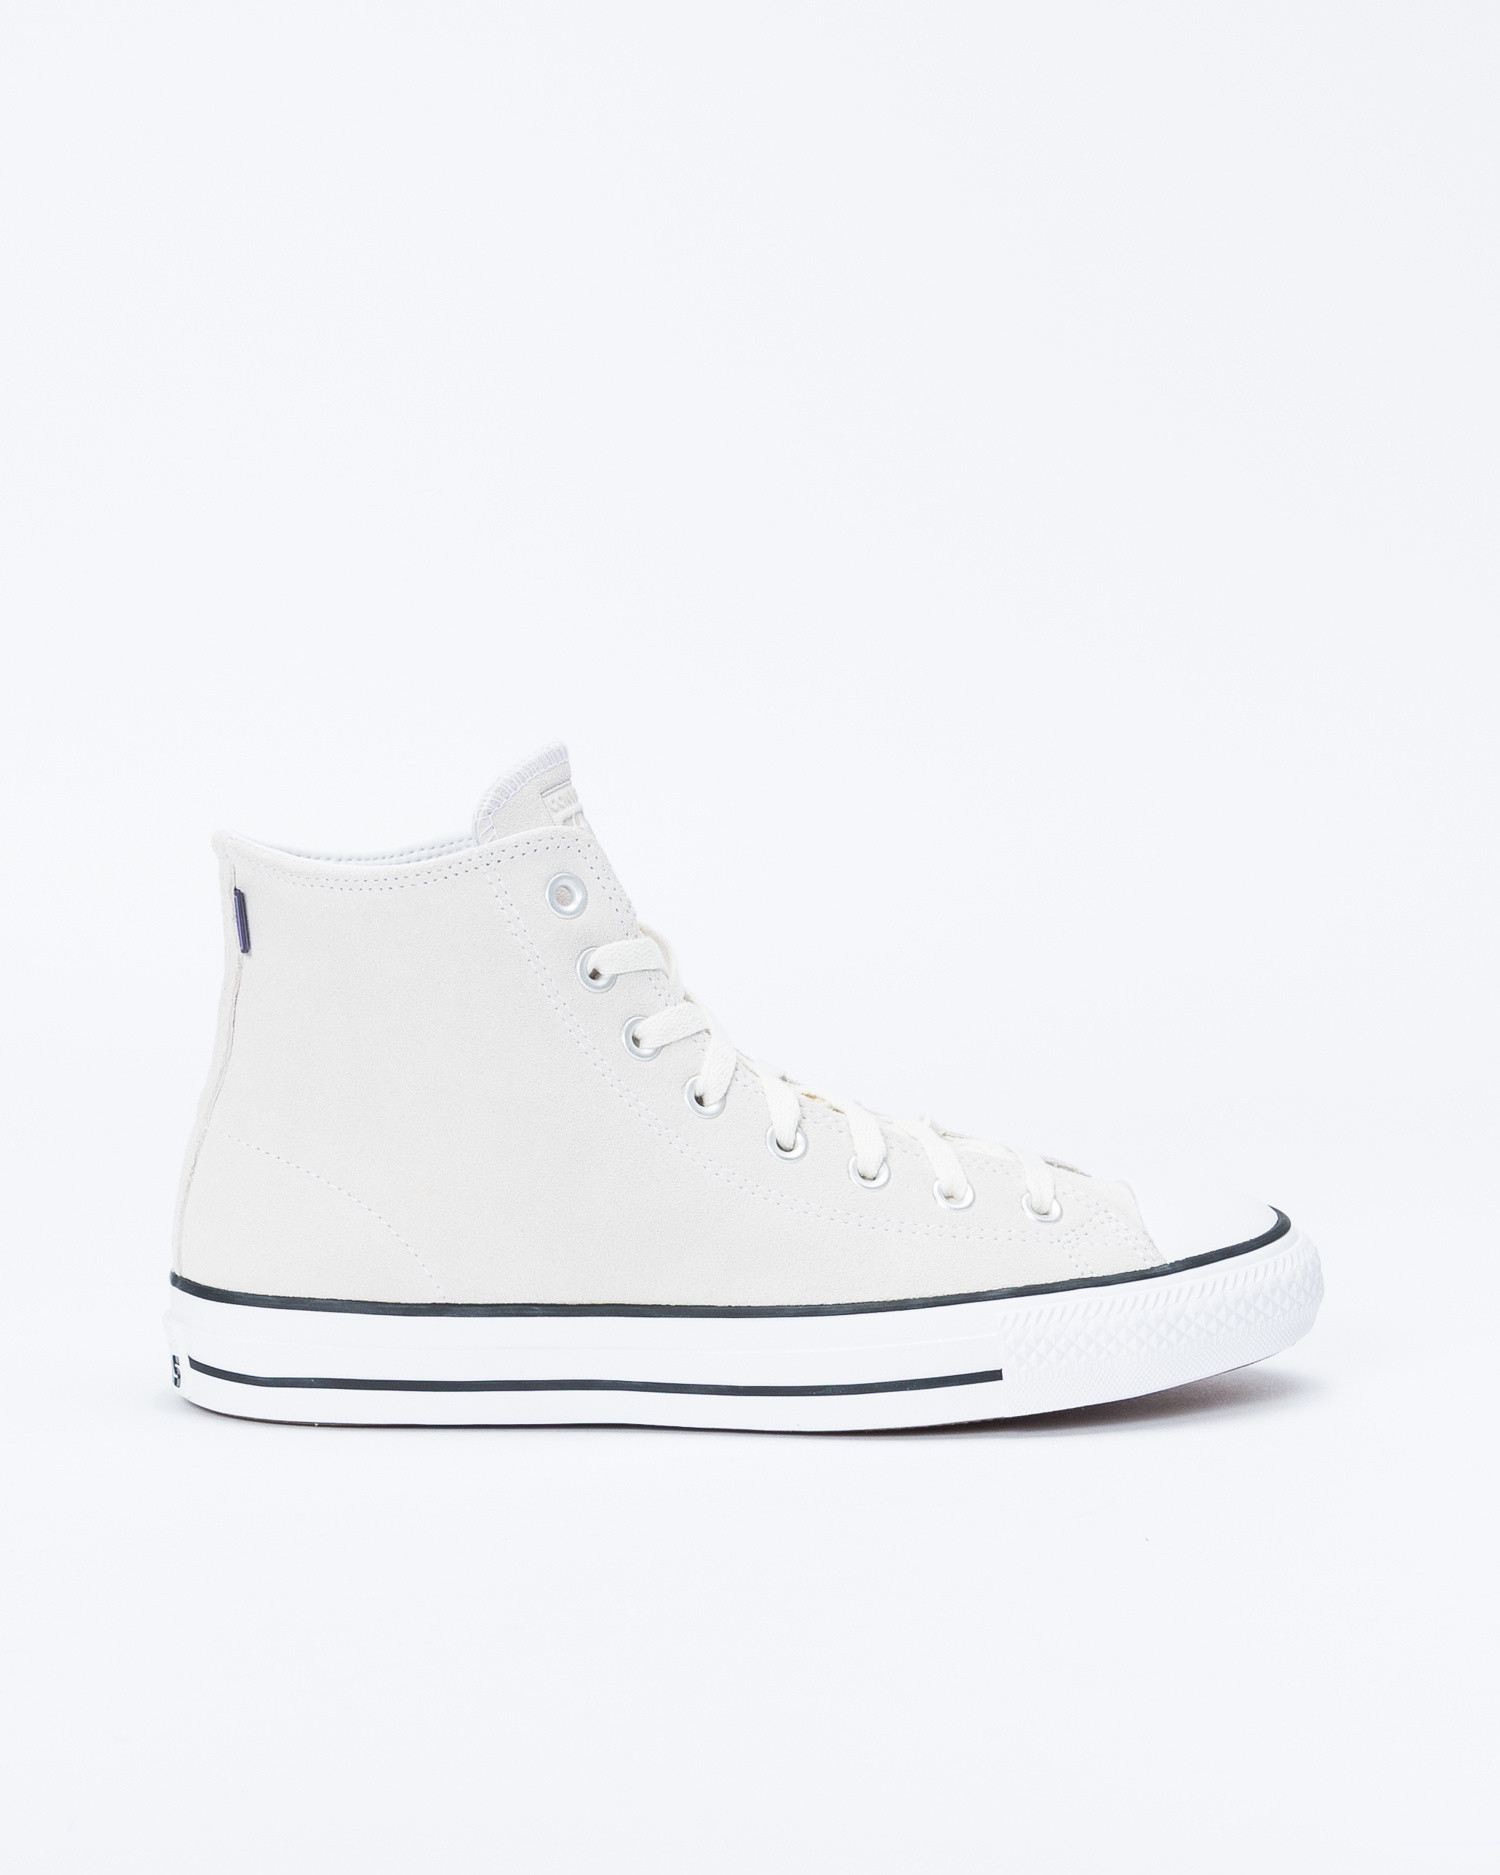 Chuck Taylor All Star Rubber collection | Converse | thunder